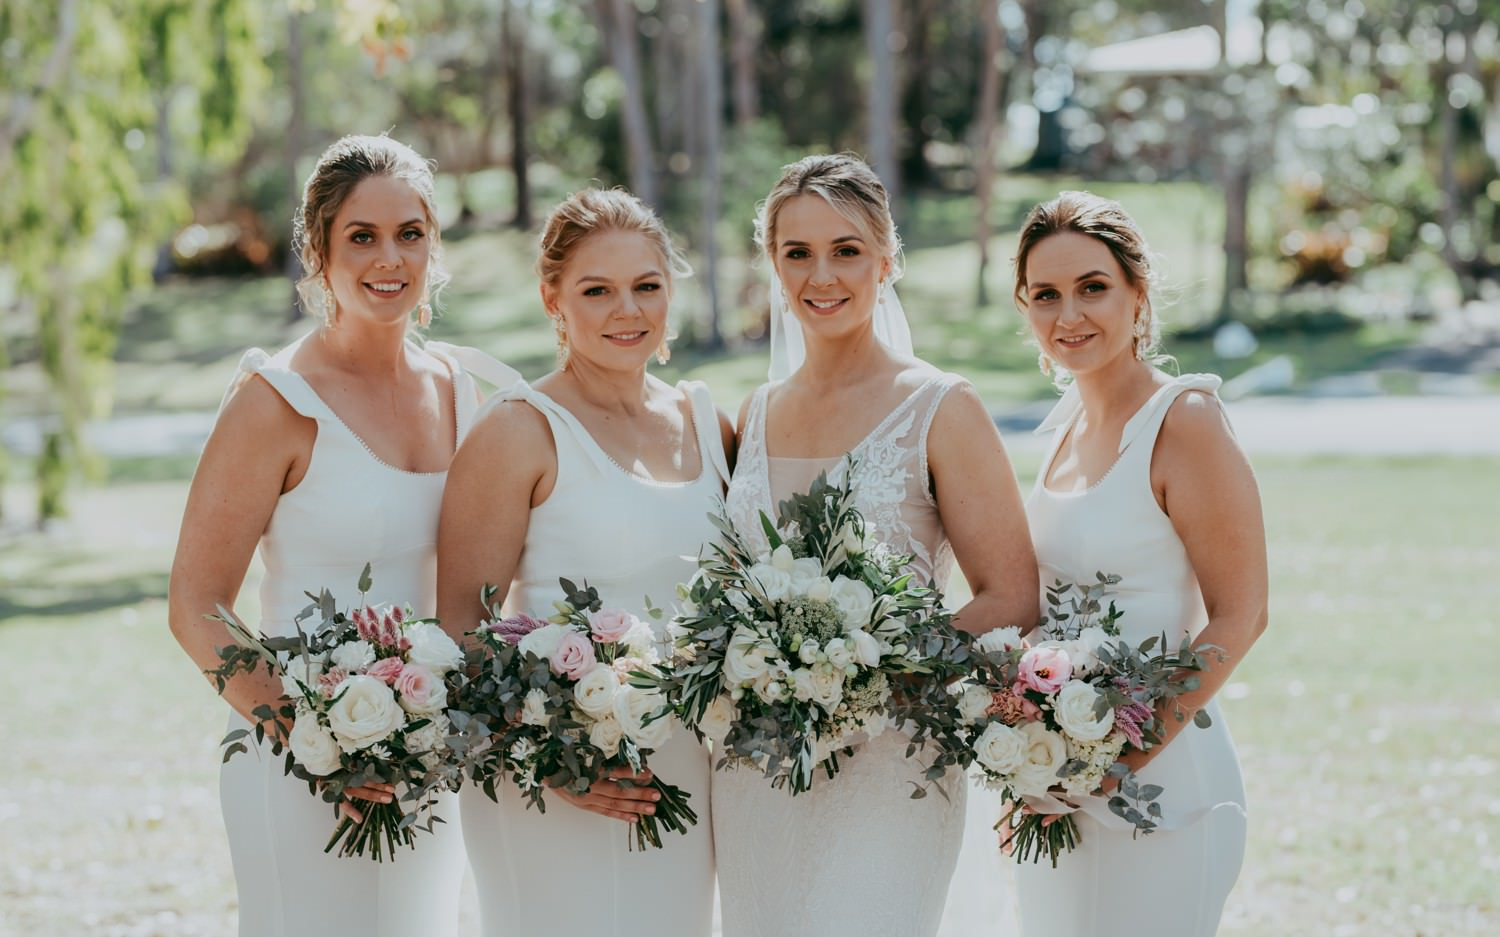 Bridal Party in classic white dresses